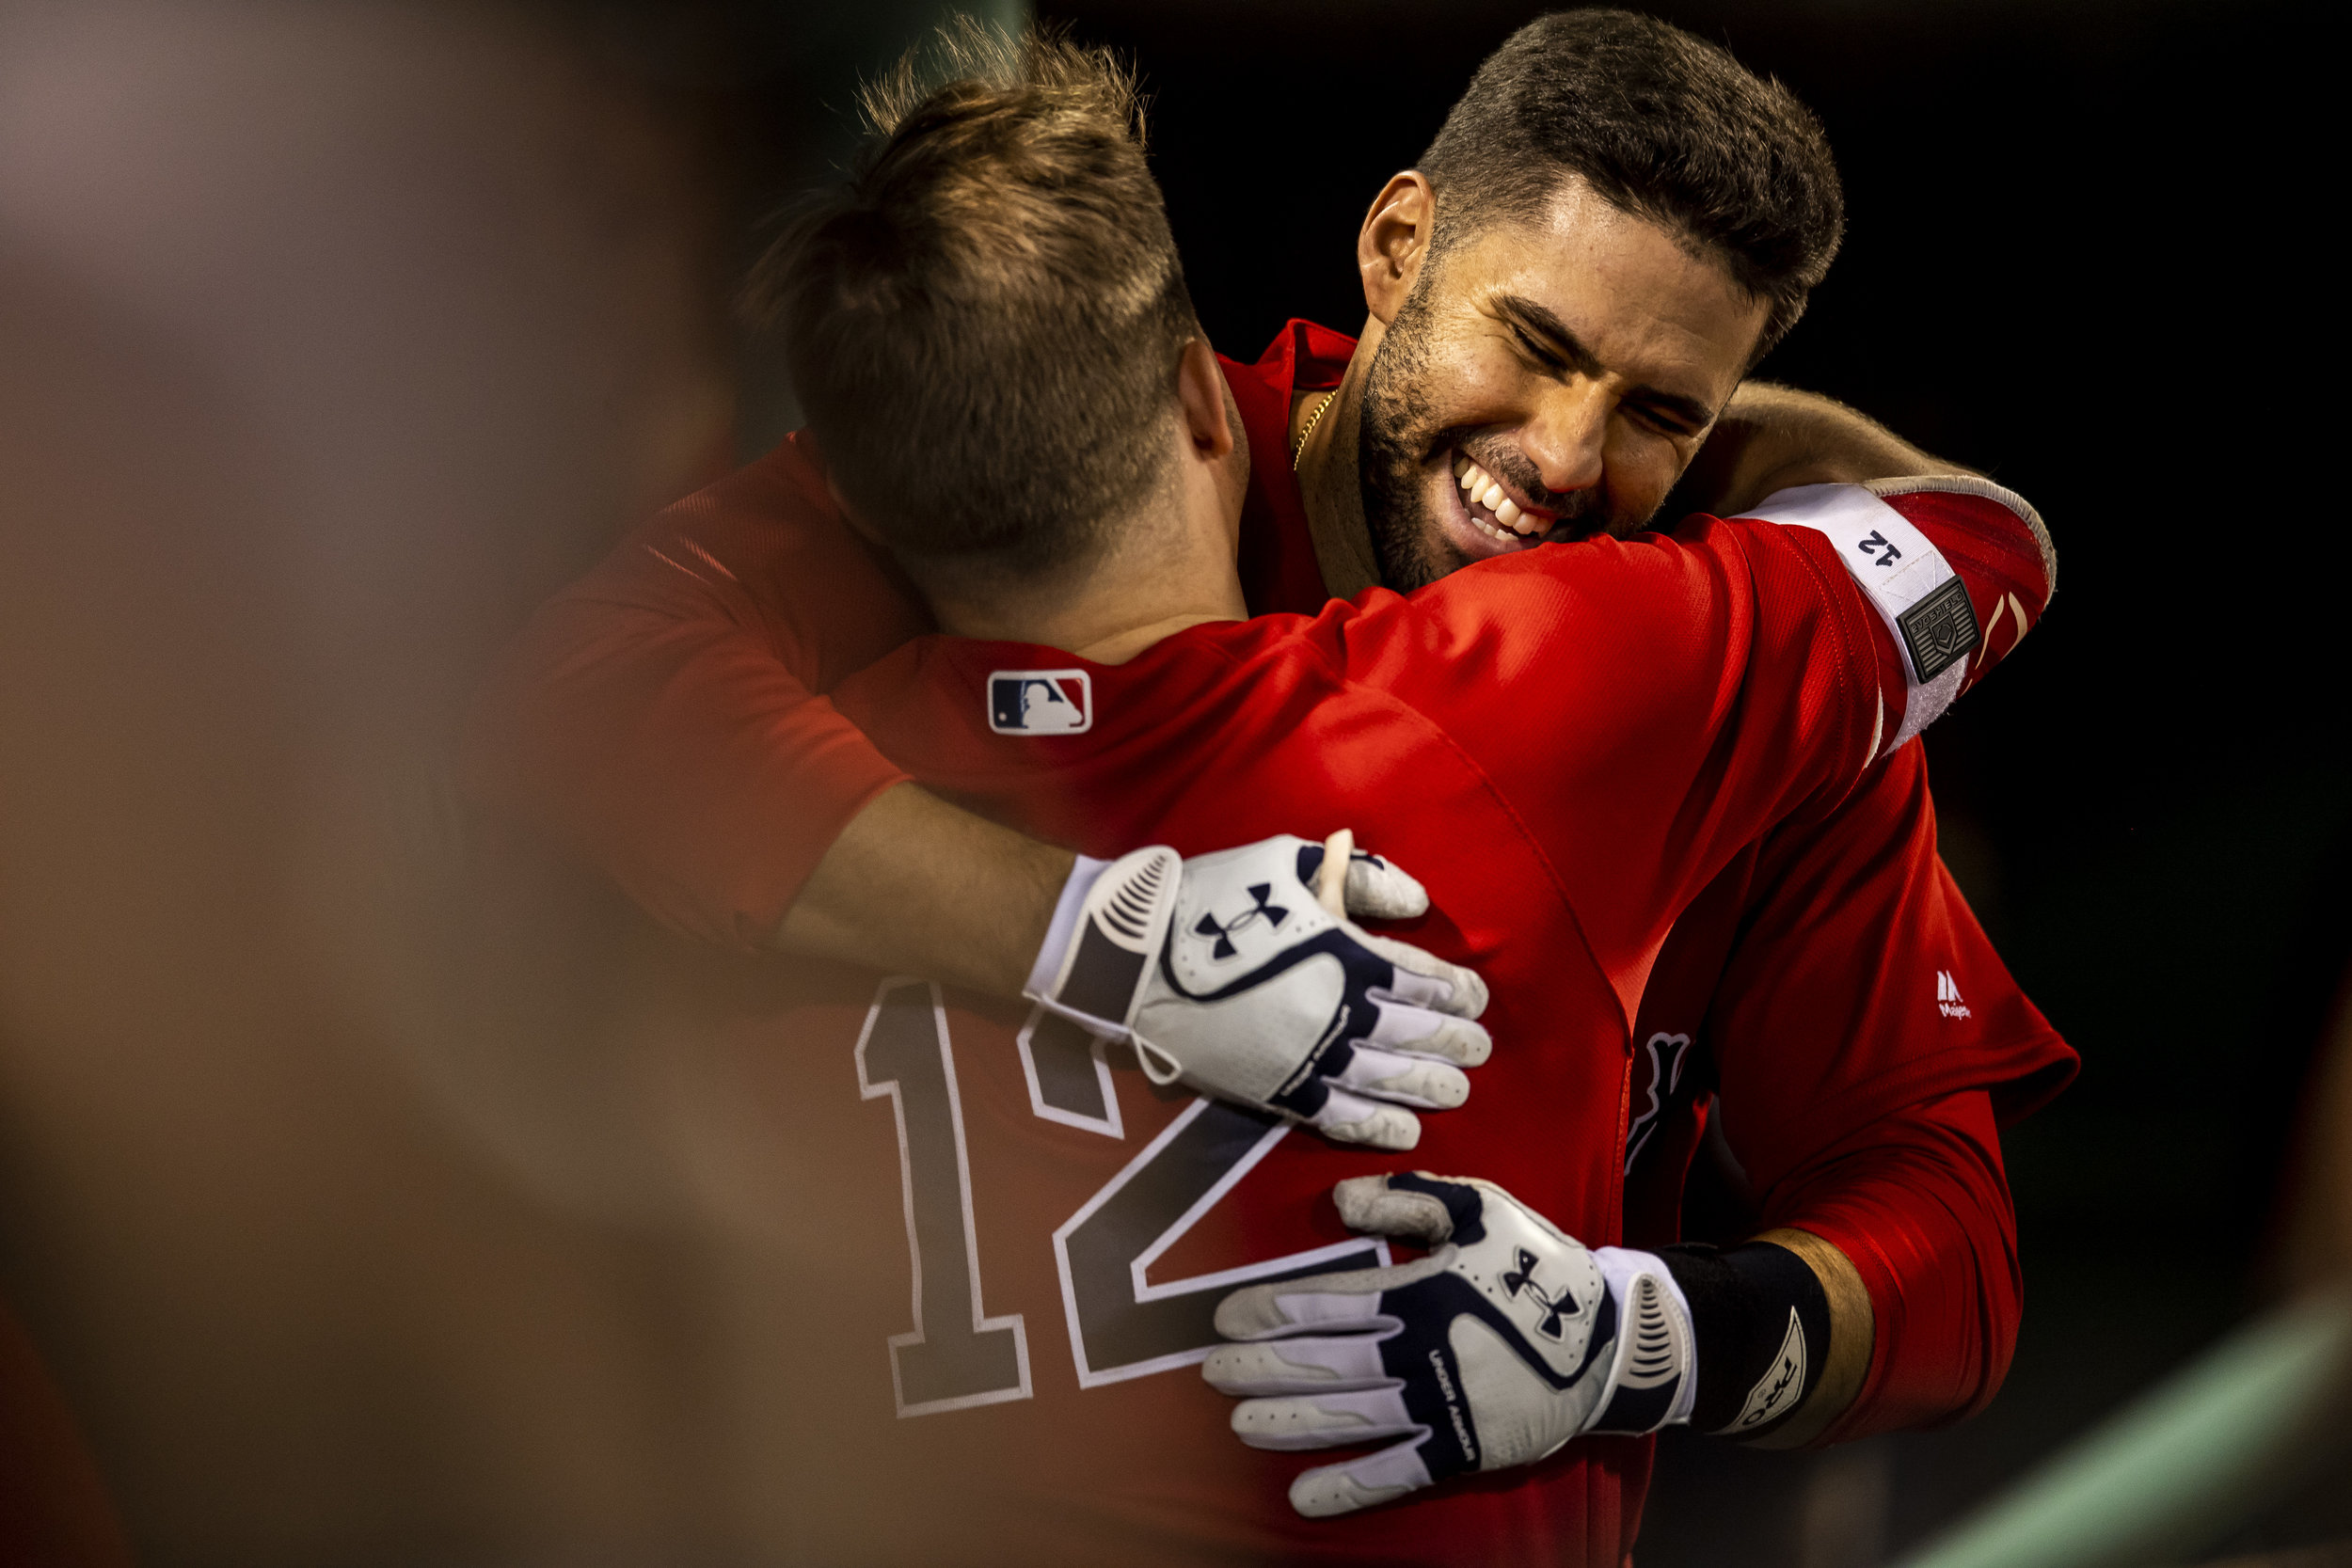 May 25, 2018, Boston, MA: Boston Red Sox designated hitter J.D. Martinez hugs Boston Red Sox outfielder Brock Holt after he makes his way back into the dugout after hitting a home run as the Boston Red Sox face the Atlanta Braves at Fenway Park in Boston, Massachusetts on Friday, May 25, 2018. (Photo by Matthew Thomas/Boston Red Sox)